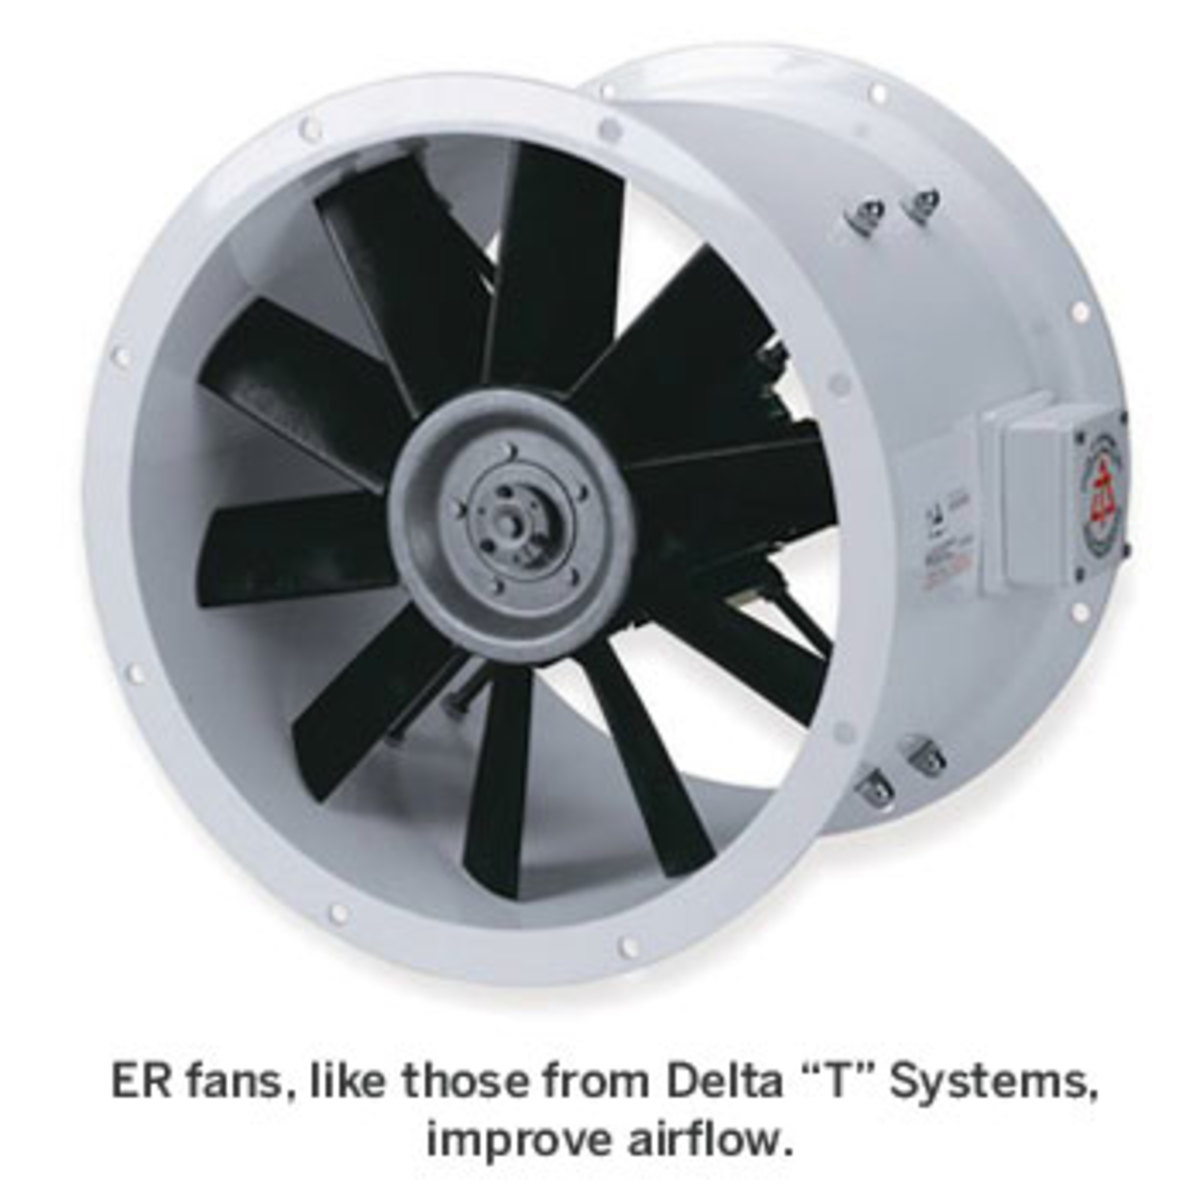 Engine room fan